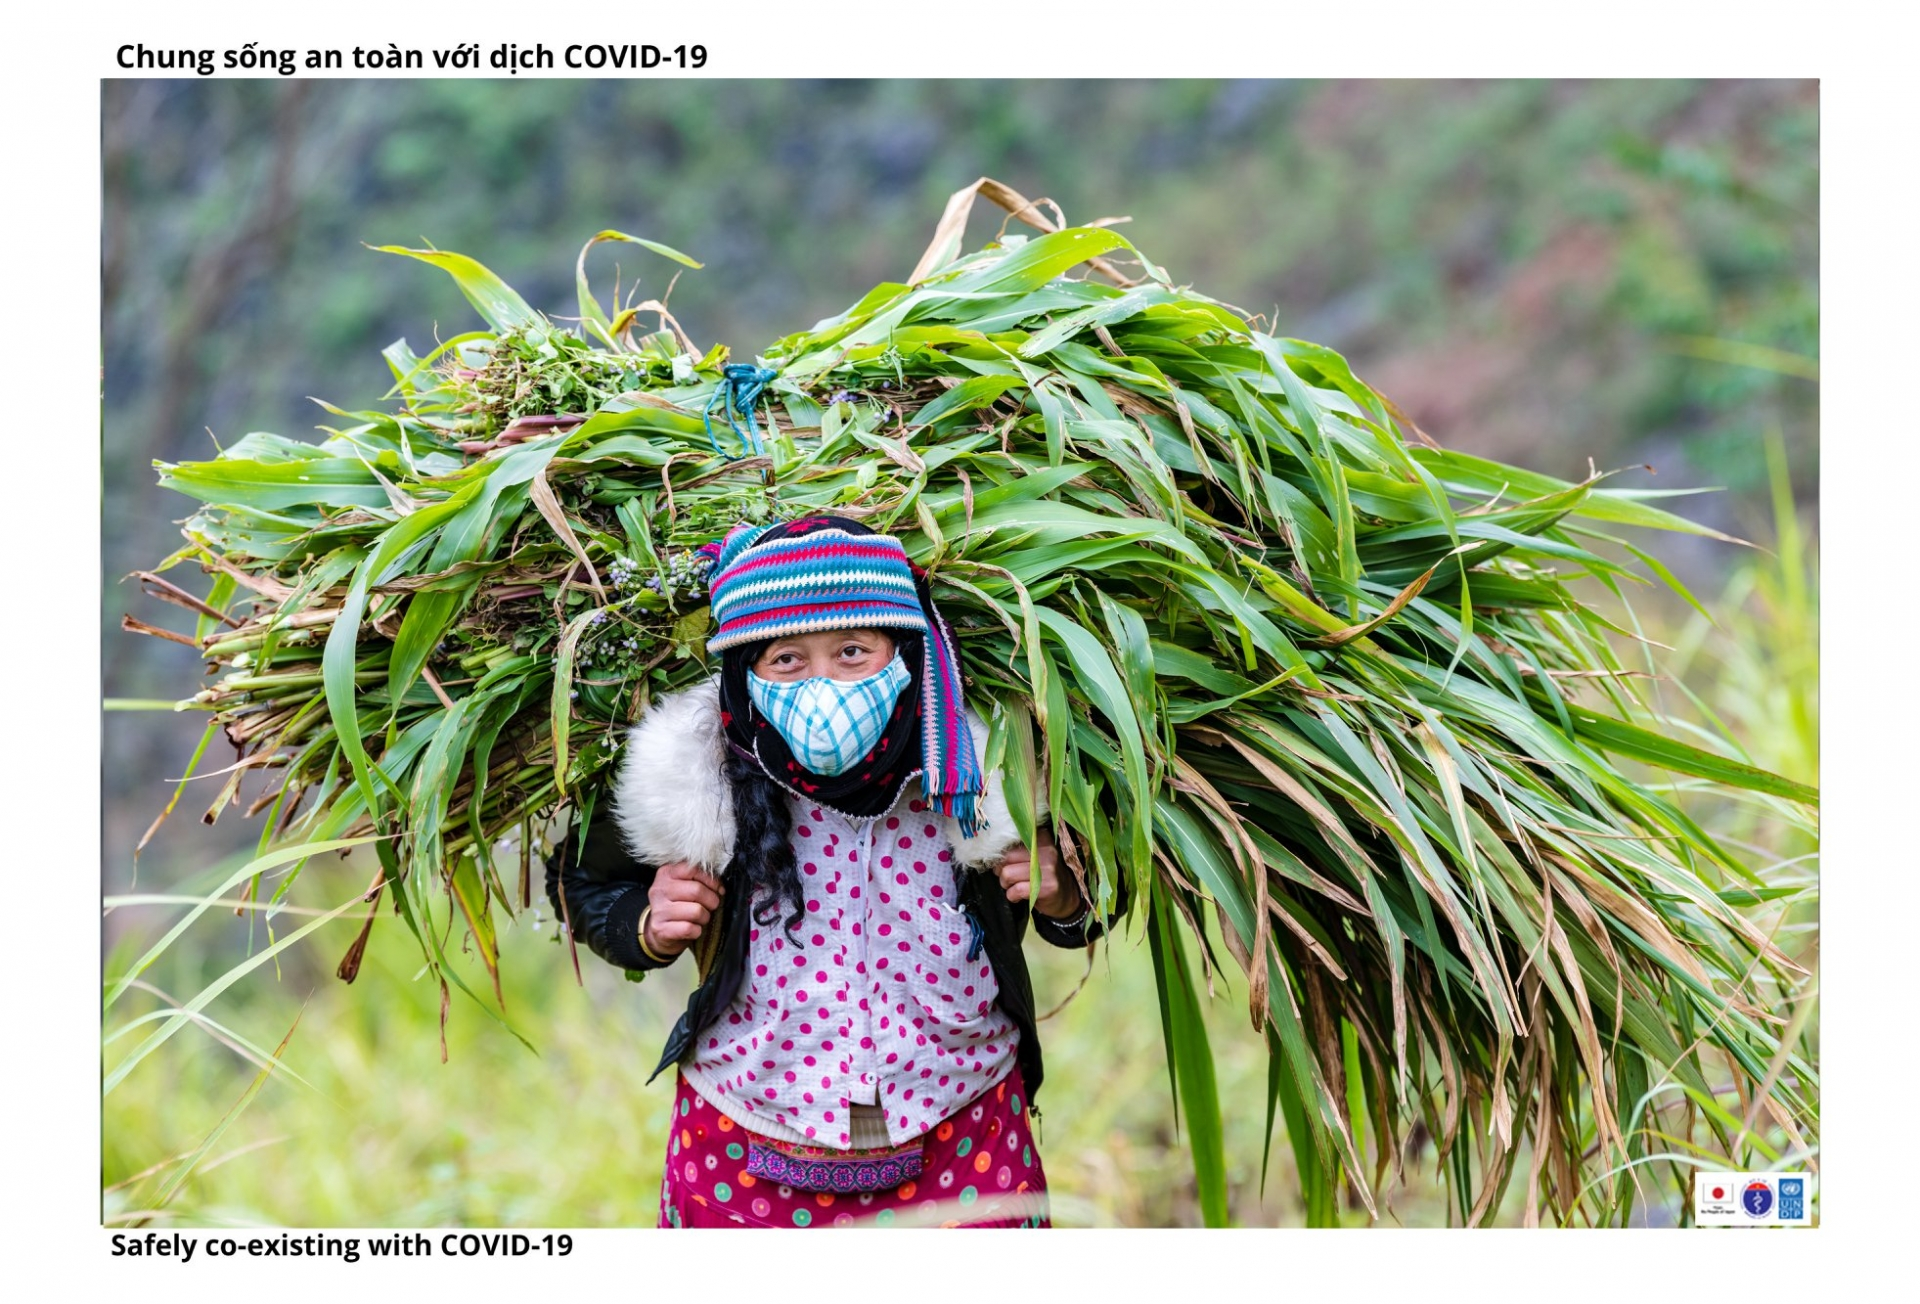 People in Ha Giang develop sustainable economy while combat COVID 19 effectively